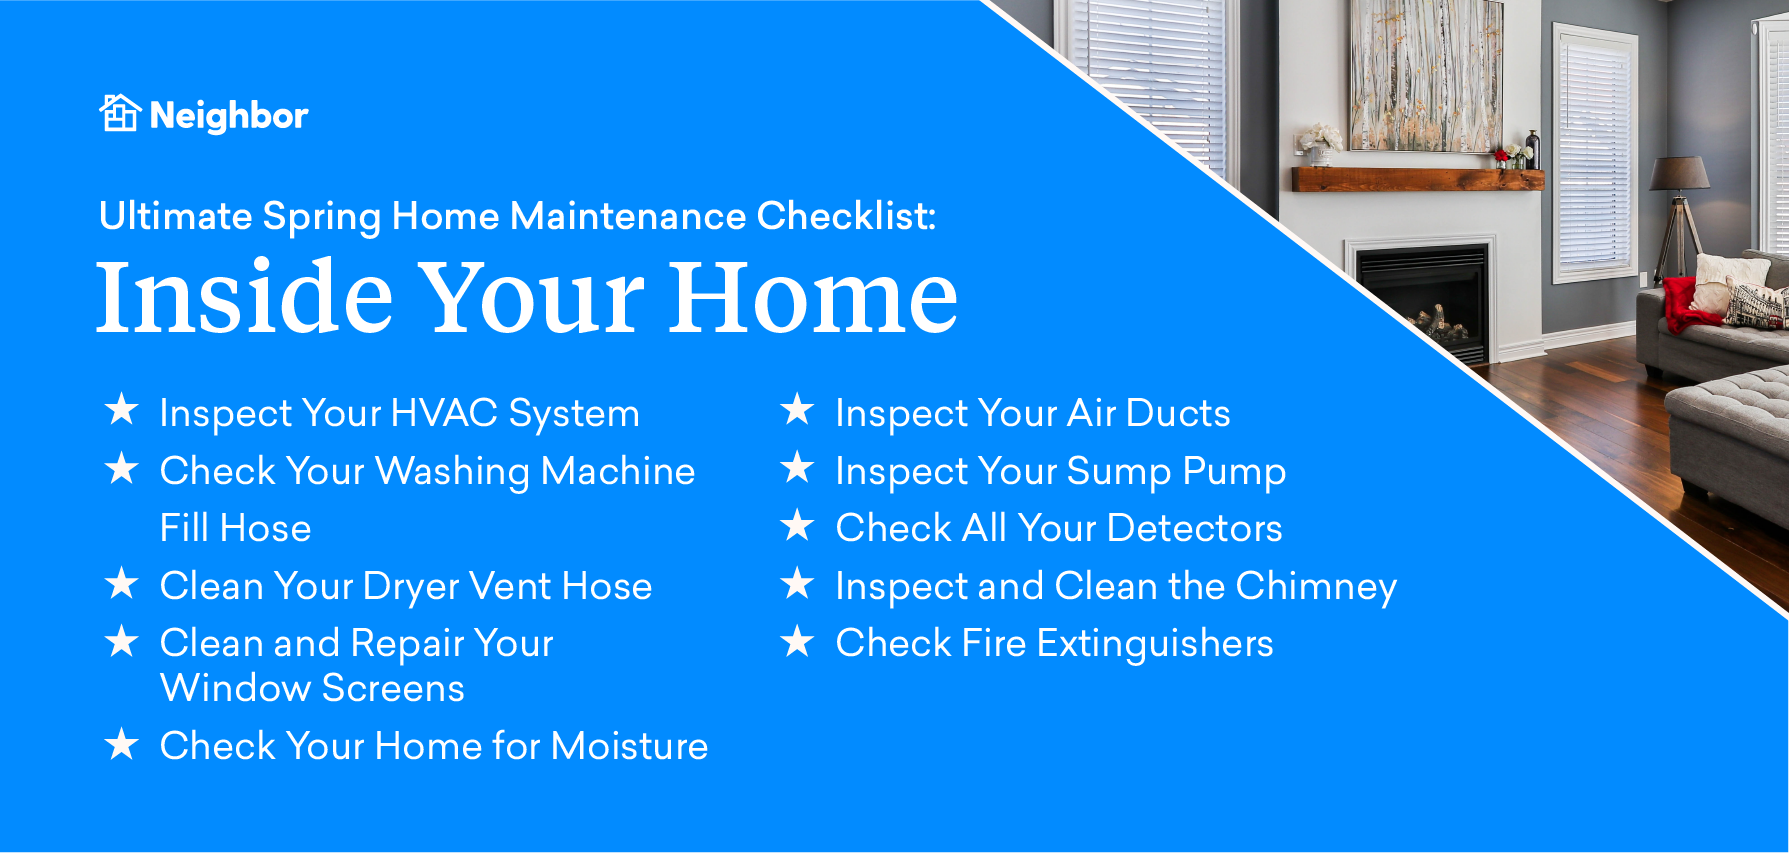 Spring maintenance inside your home